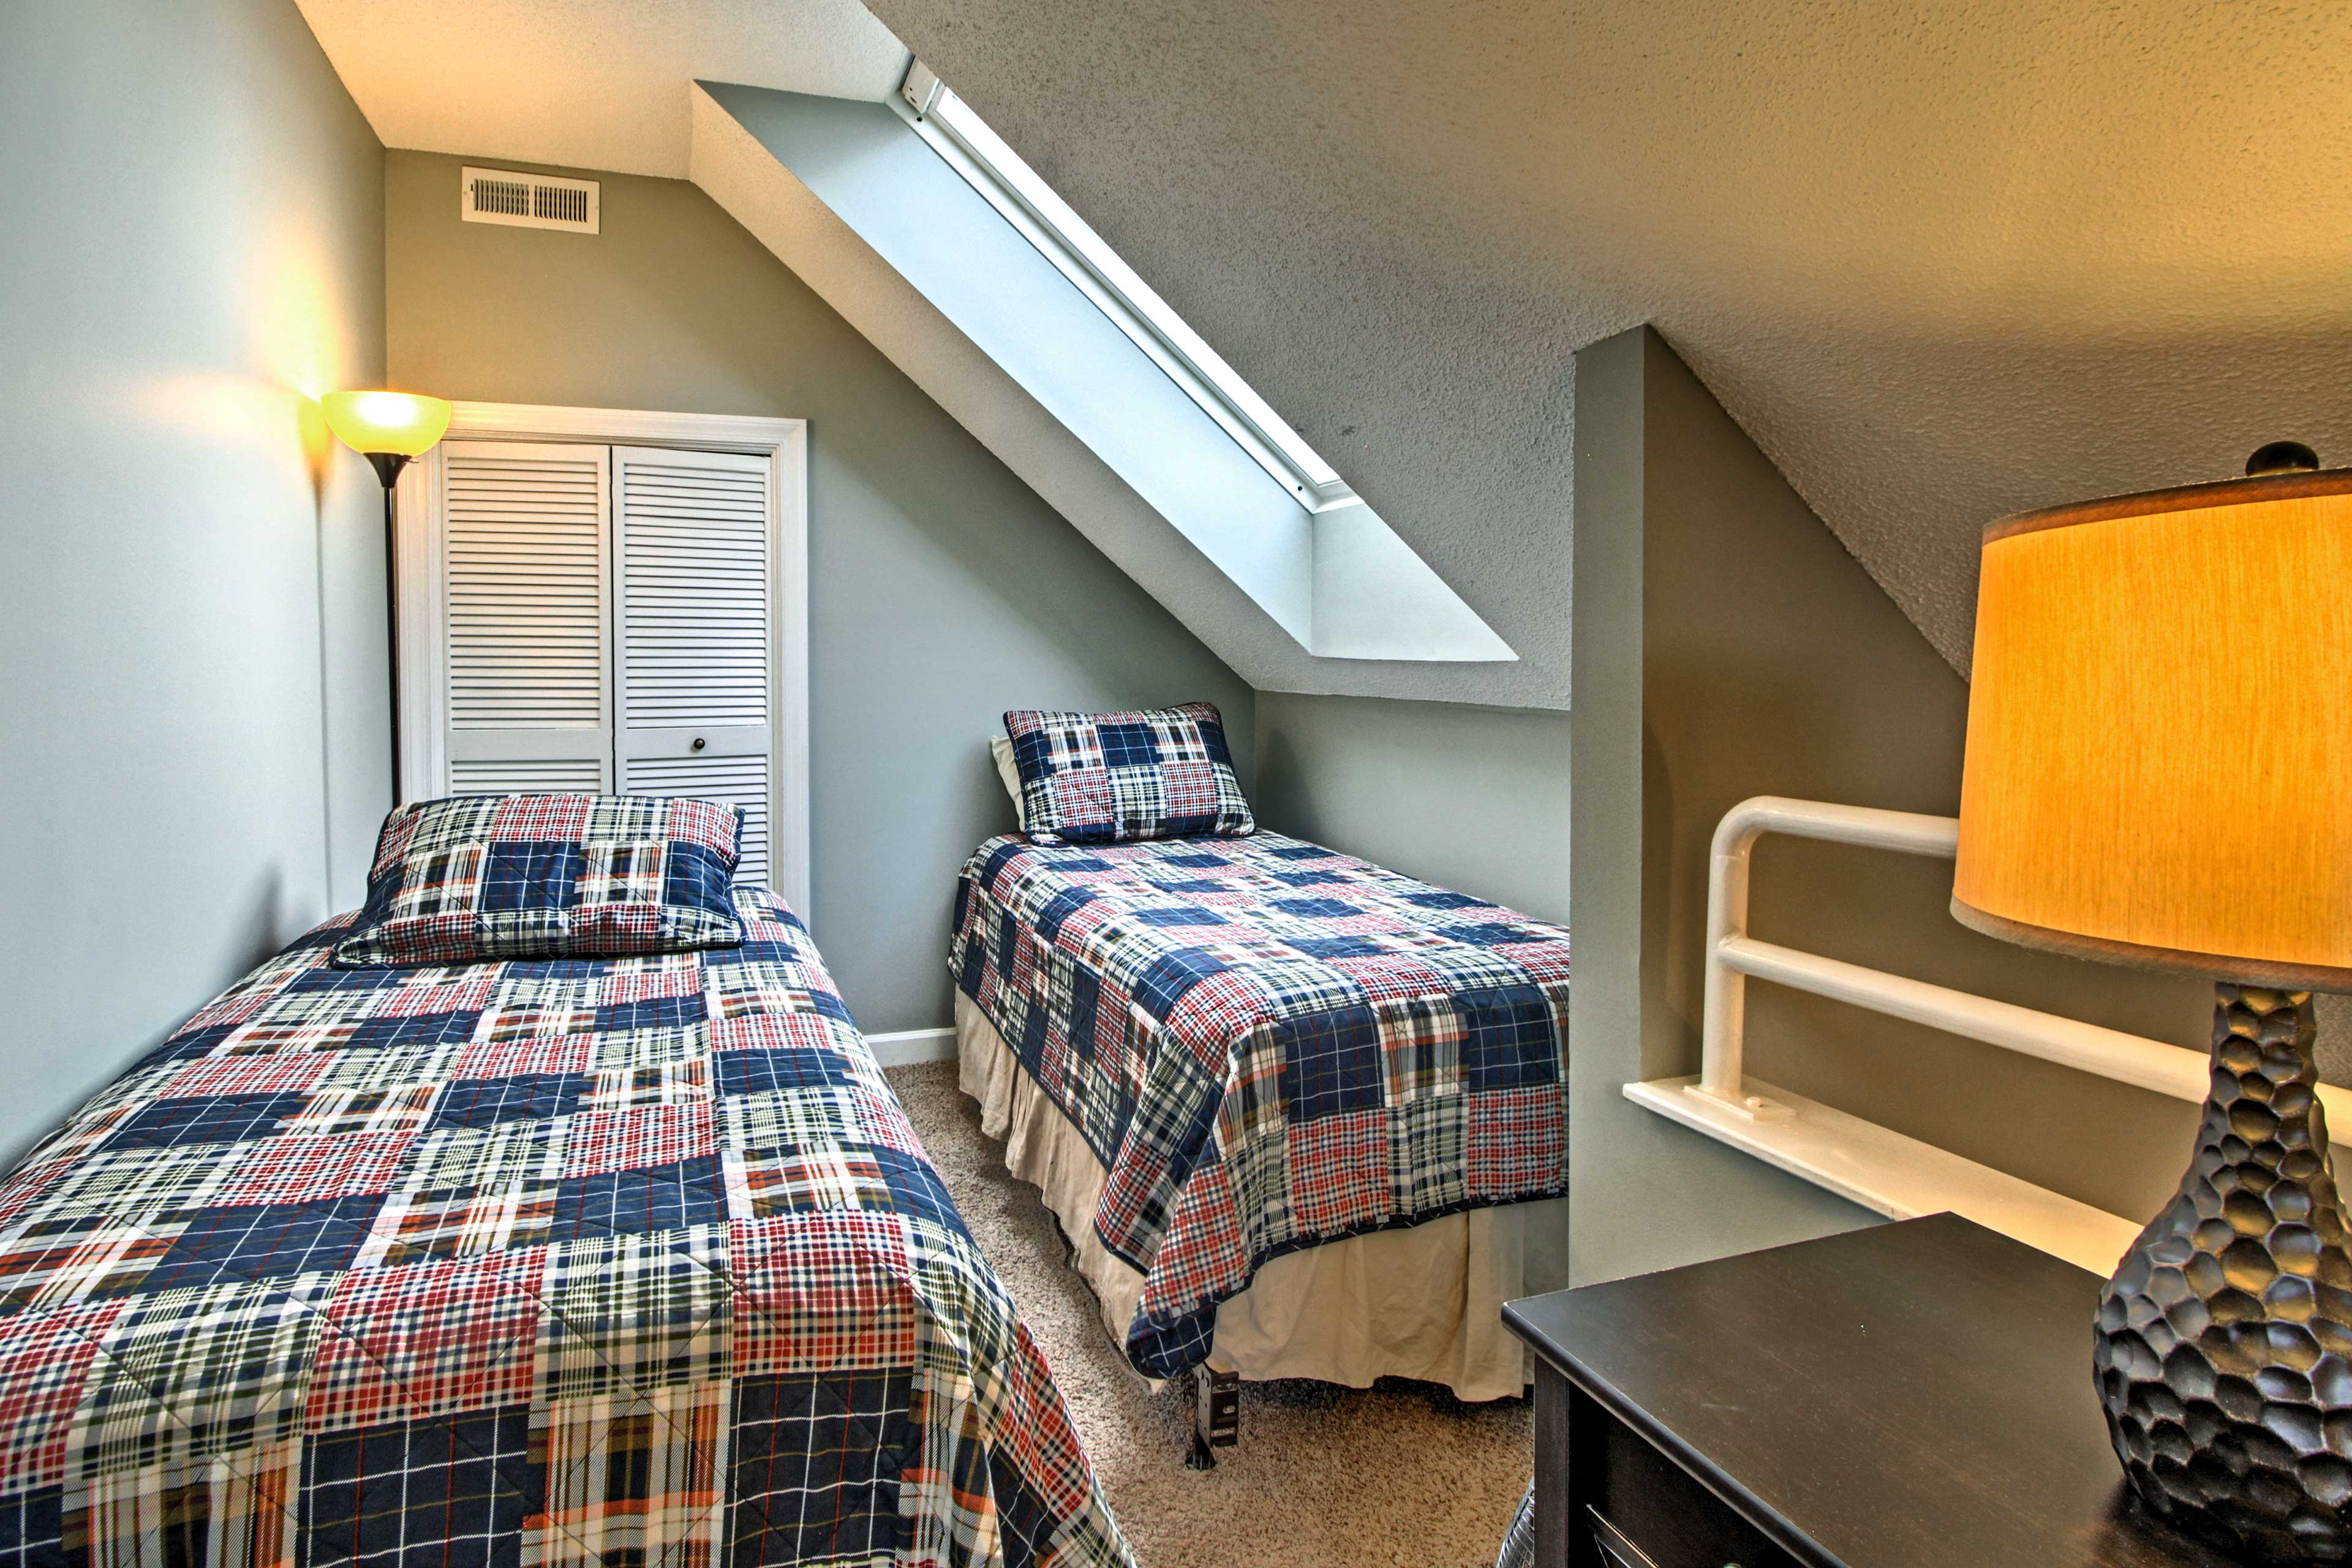 Kids can climb the stairs up to the lofted bedroom.